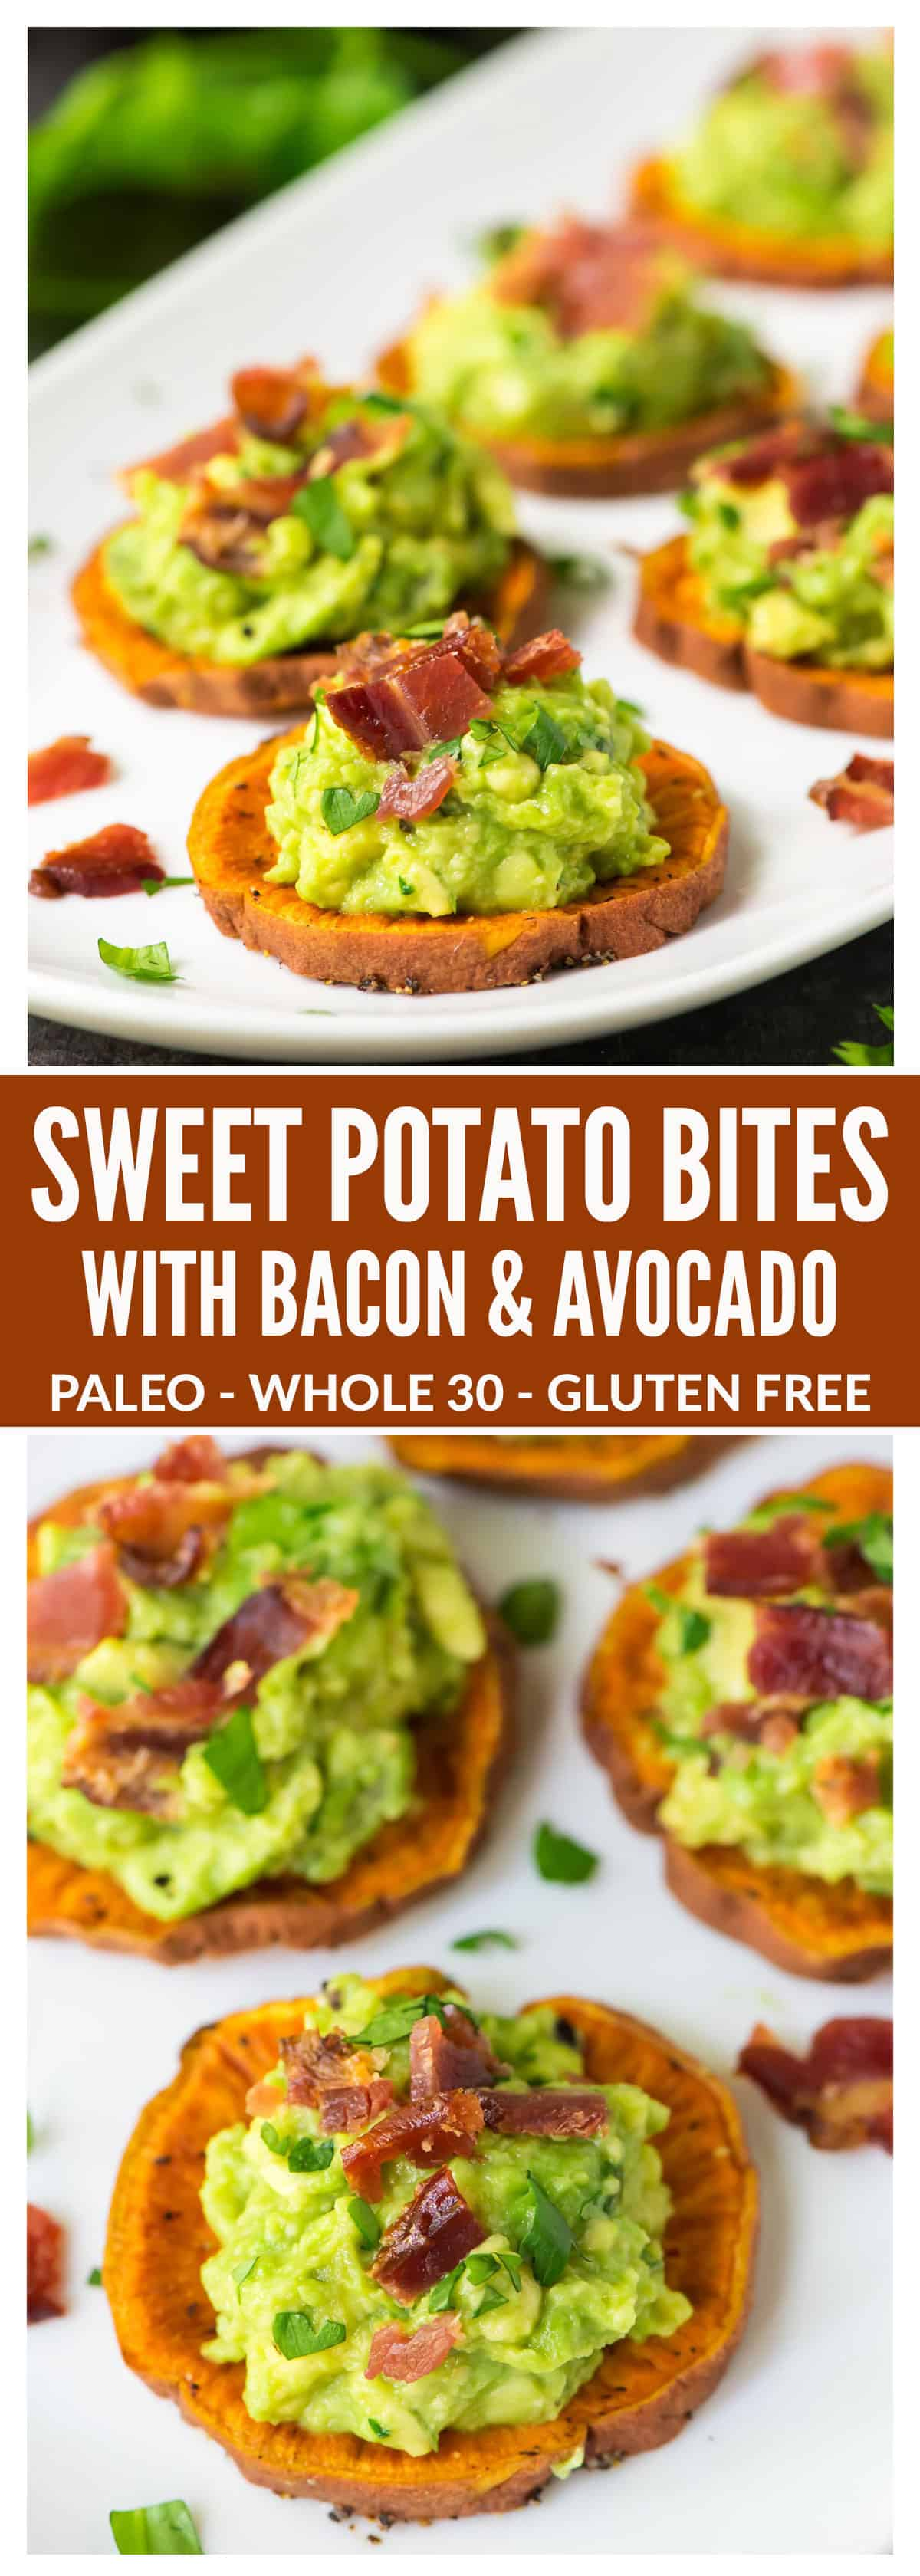 Sweet Potato Bites with Bacon and Avocado. Great finger food for game day! Paleo, gluten free, dairy free, and DELICIOUS. This easy and healthy baked sweet potato appetizer is always a crowd pleaser. @wellplated | #appetizers #bacon #glutenfree #dairyfree #paleo